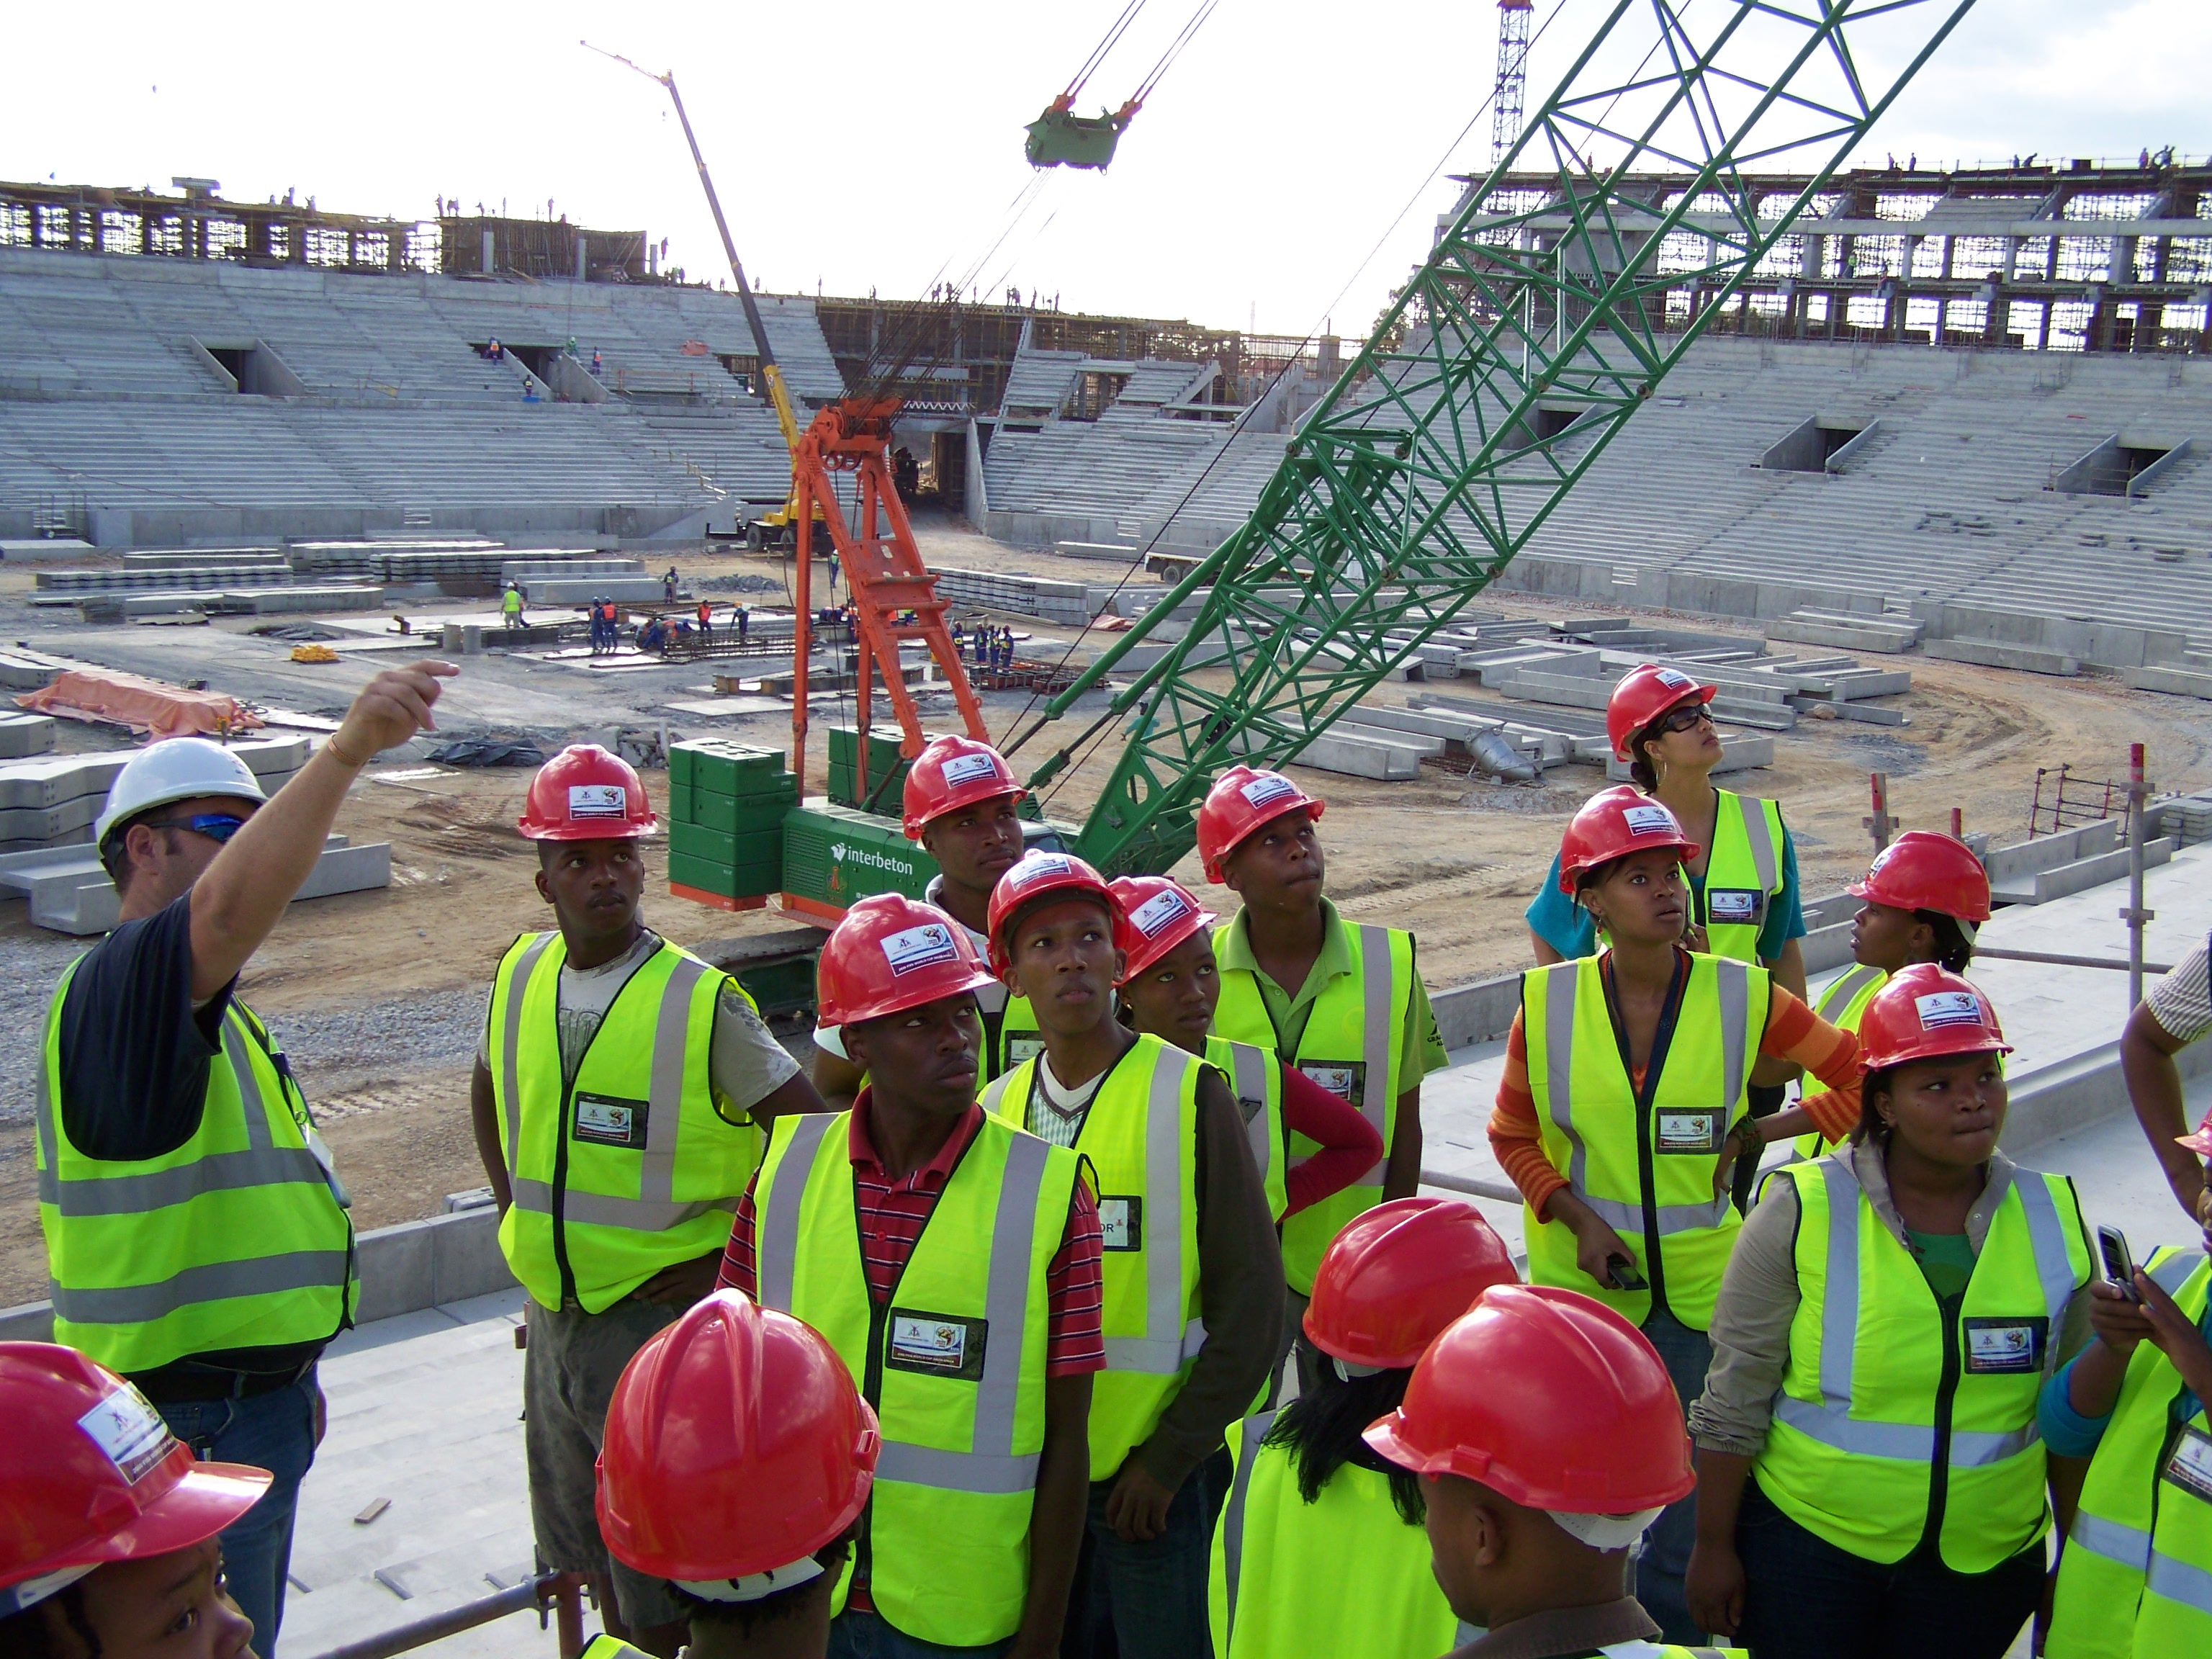 Eddie, a safety officer on site explains how the stadium is built